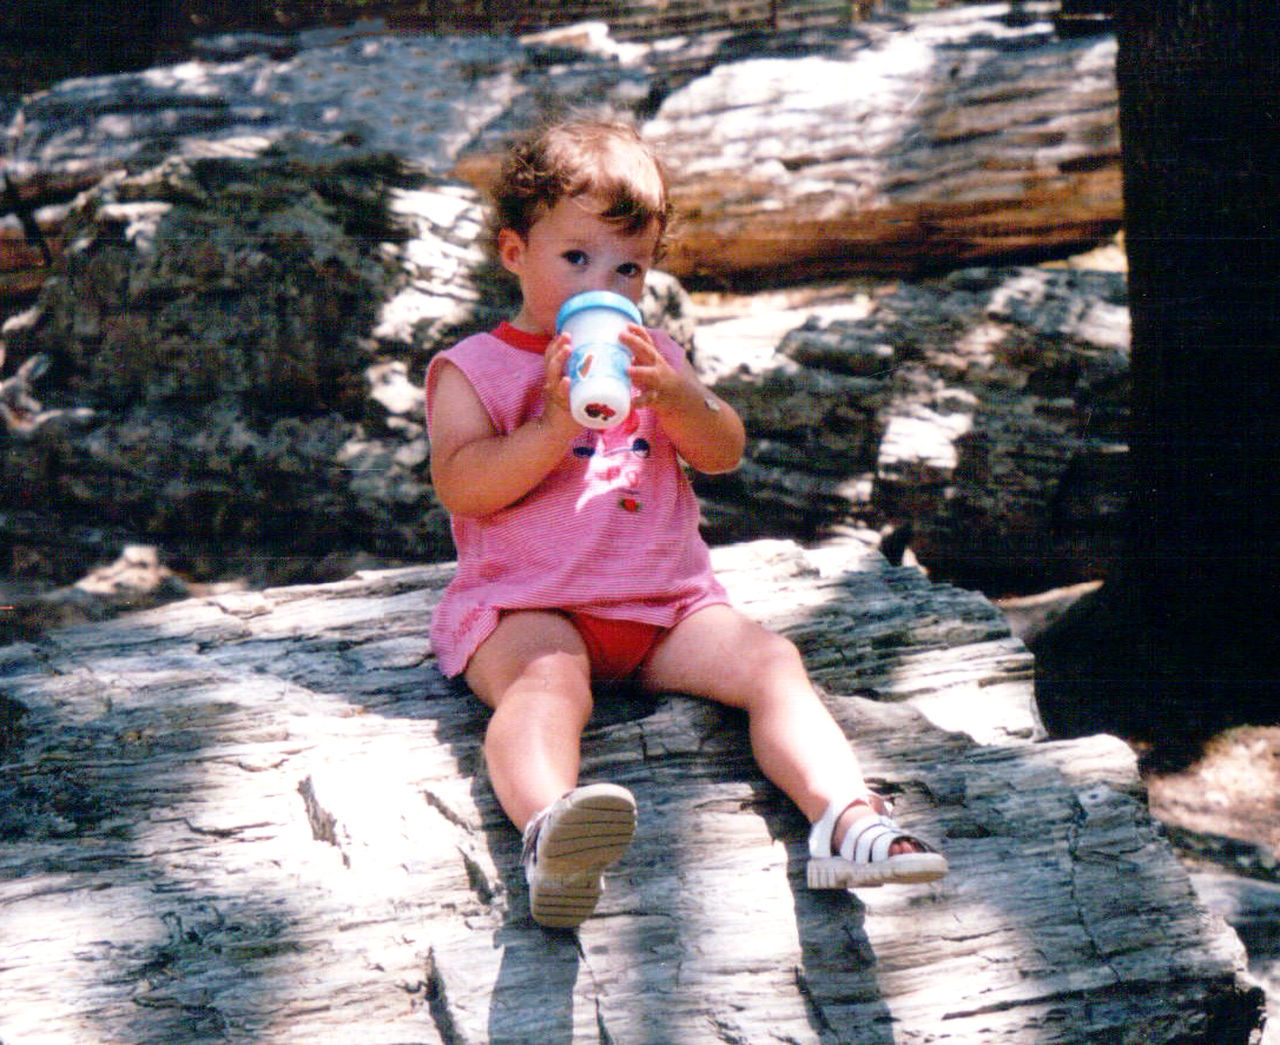 A toddler girl in pink sits on a large petrified tree trunk, having a drink from her cup, in the Petrified Forest in California. Baby California Childhood Day Drink Drinking Forest Nature Outdoor Activities Outdoors Petrified Forest Pink Color Real People Sitting Sunlight Sunlight And Shadow Taking A Break Water